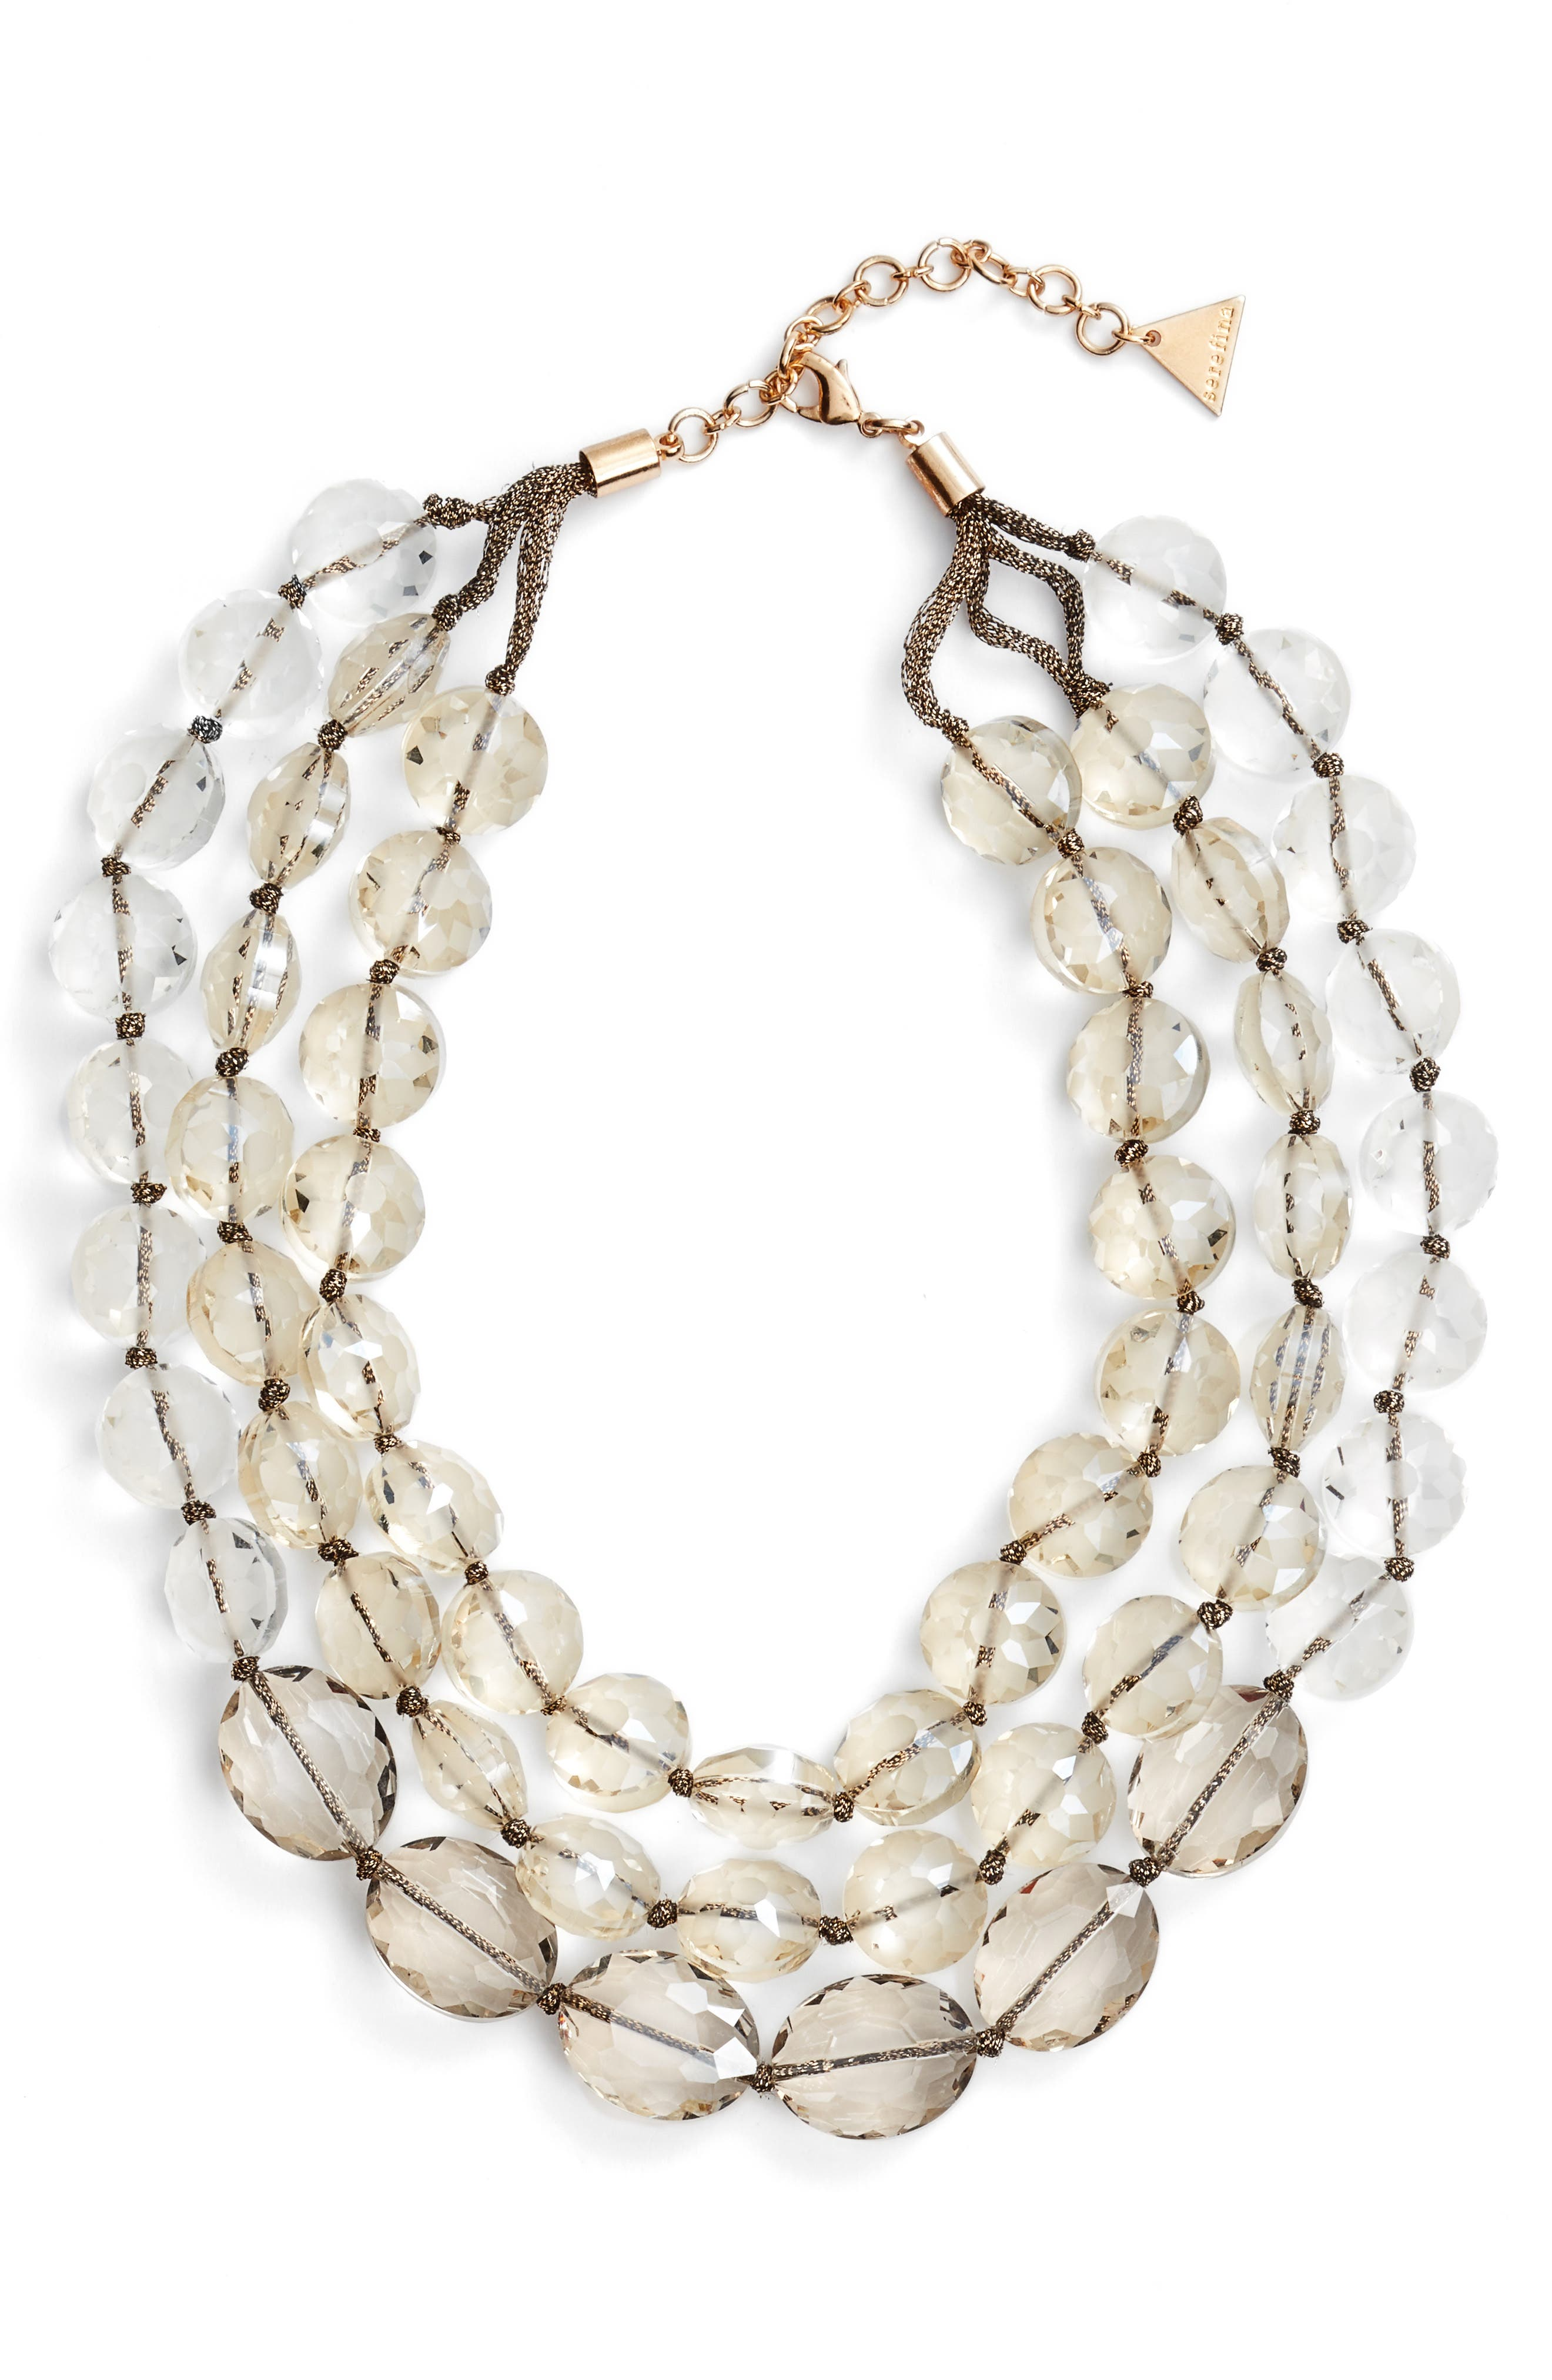 Triple Strand Crystal Statement Necklace,                             Main thumbnail 1, color,                             Crystal